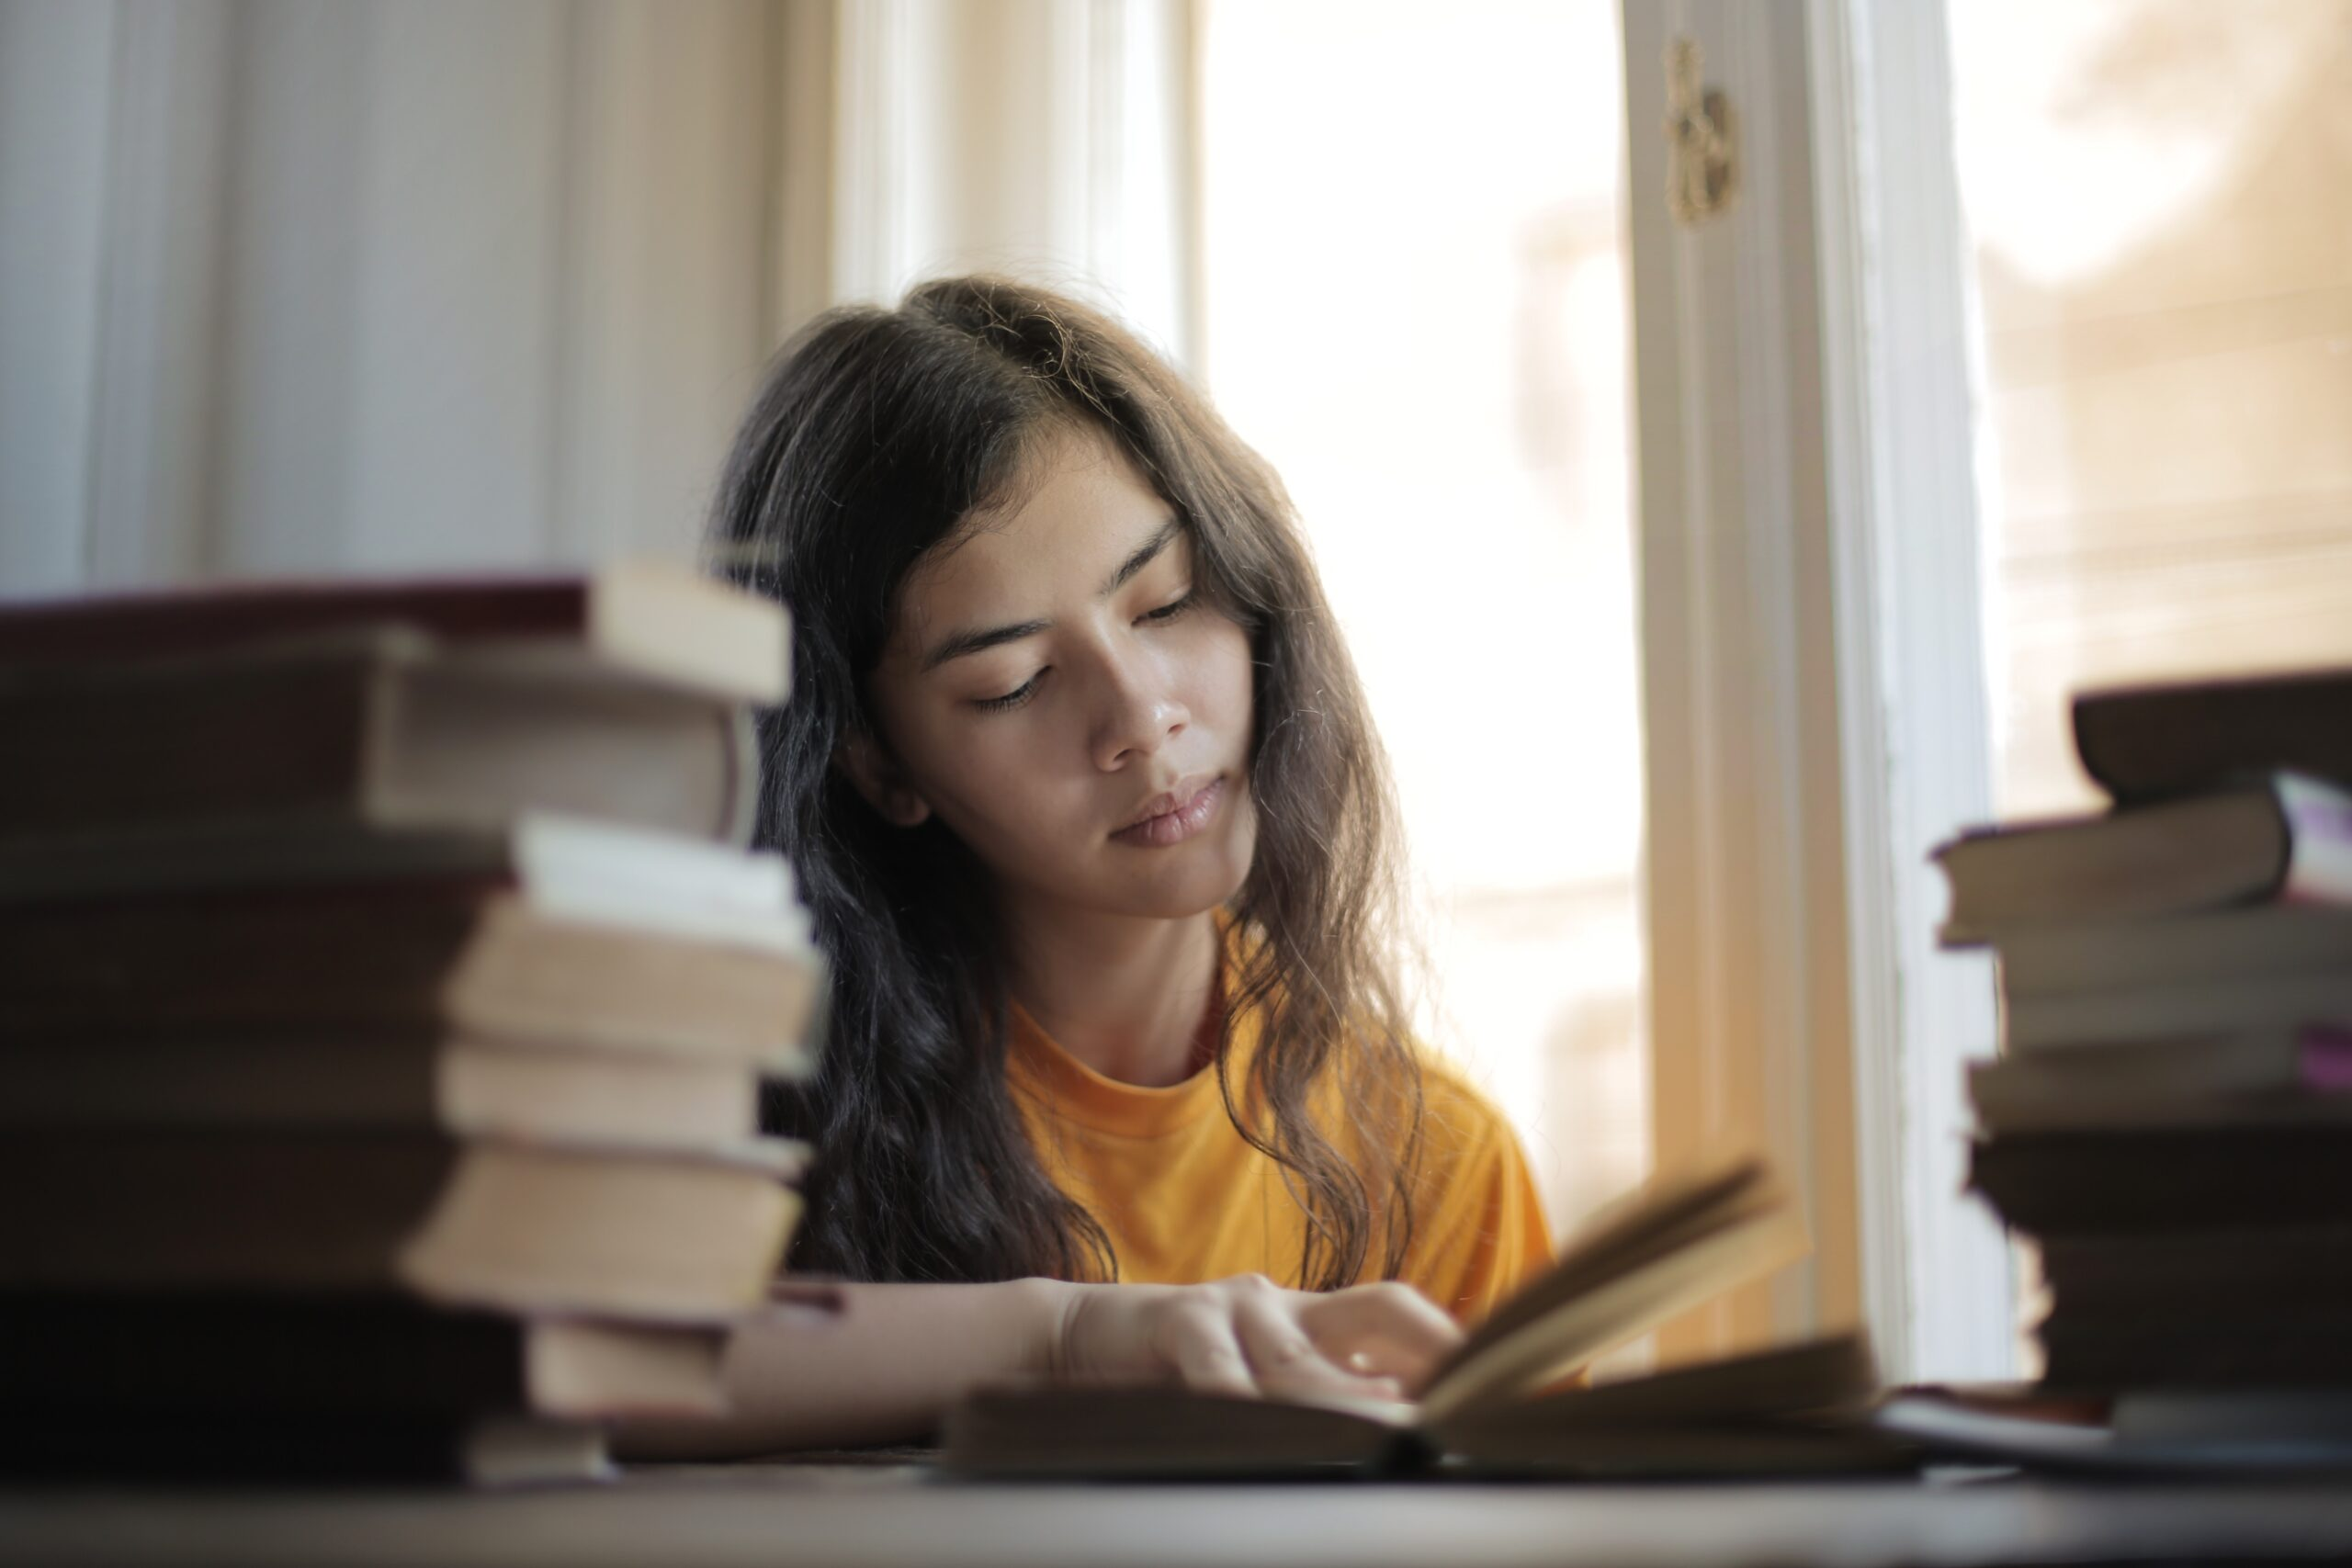 Young person studying